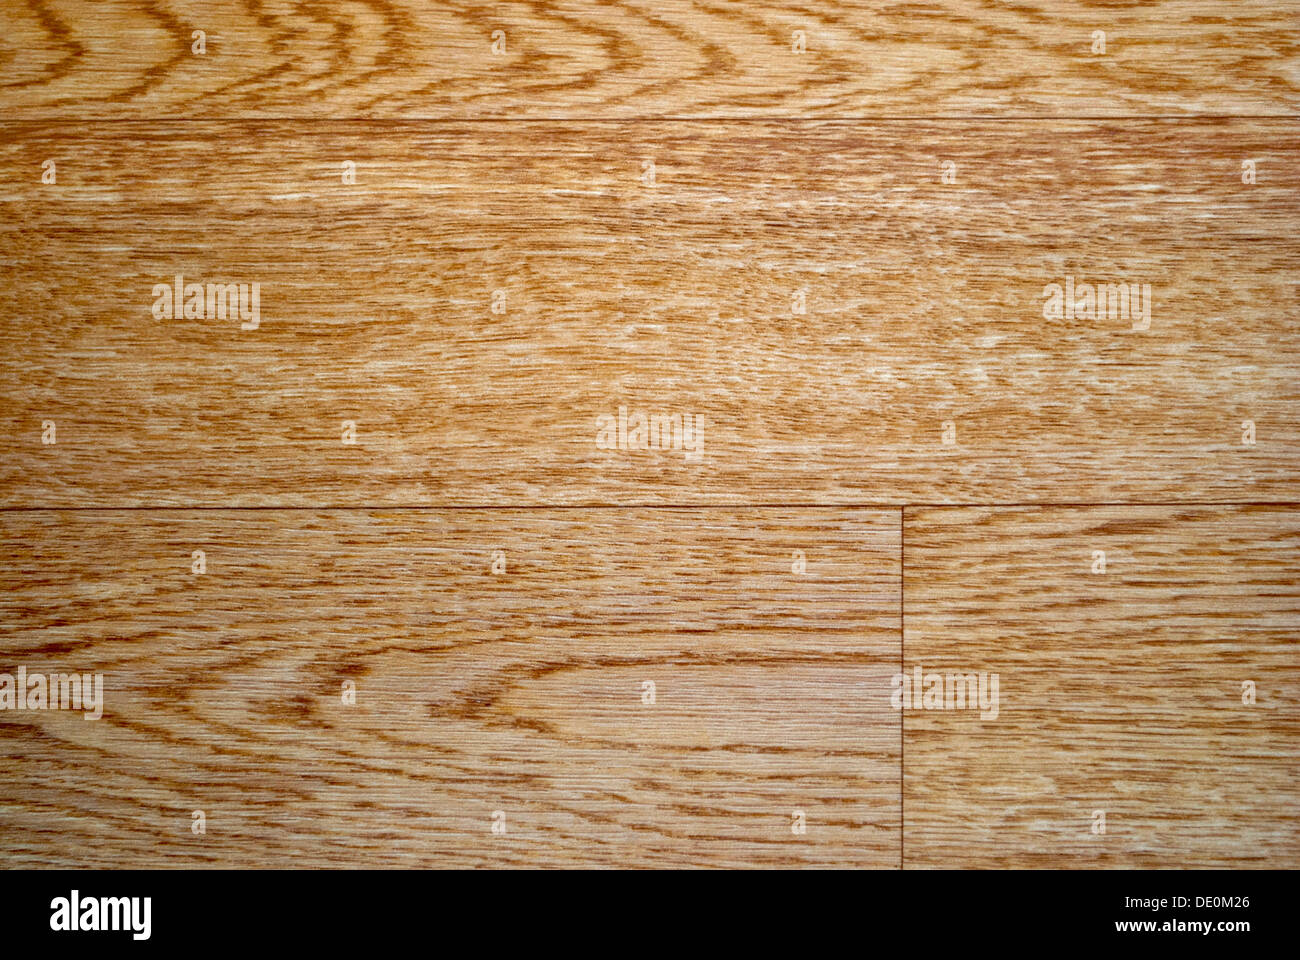 Texture of wooden parquet for background and wallpaper. - Stock Image